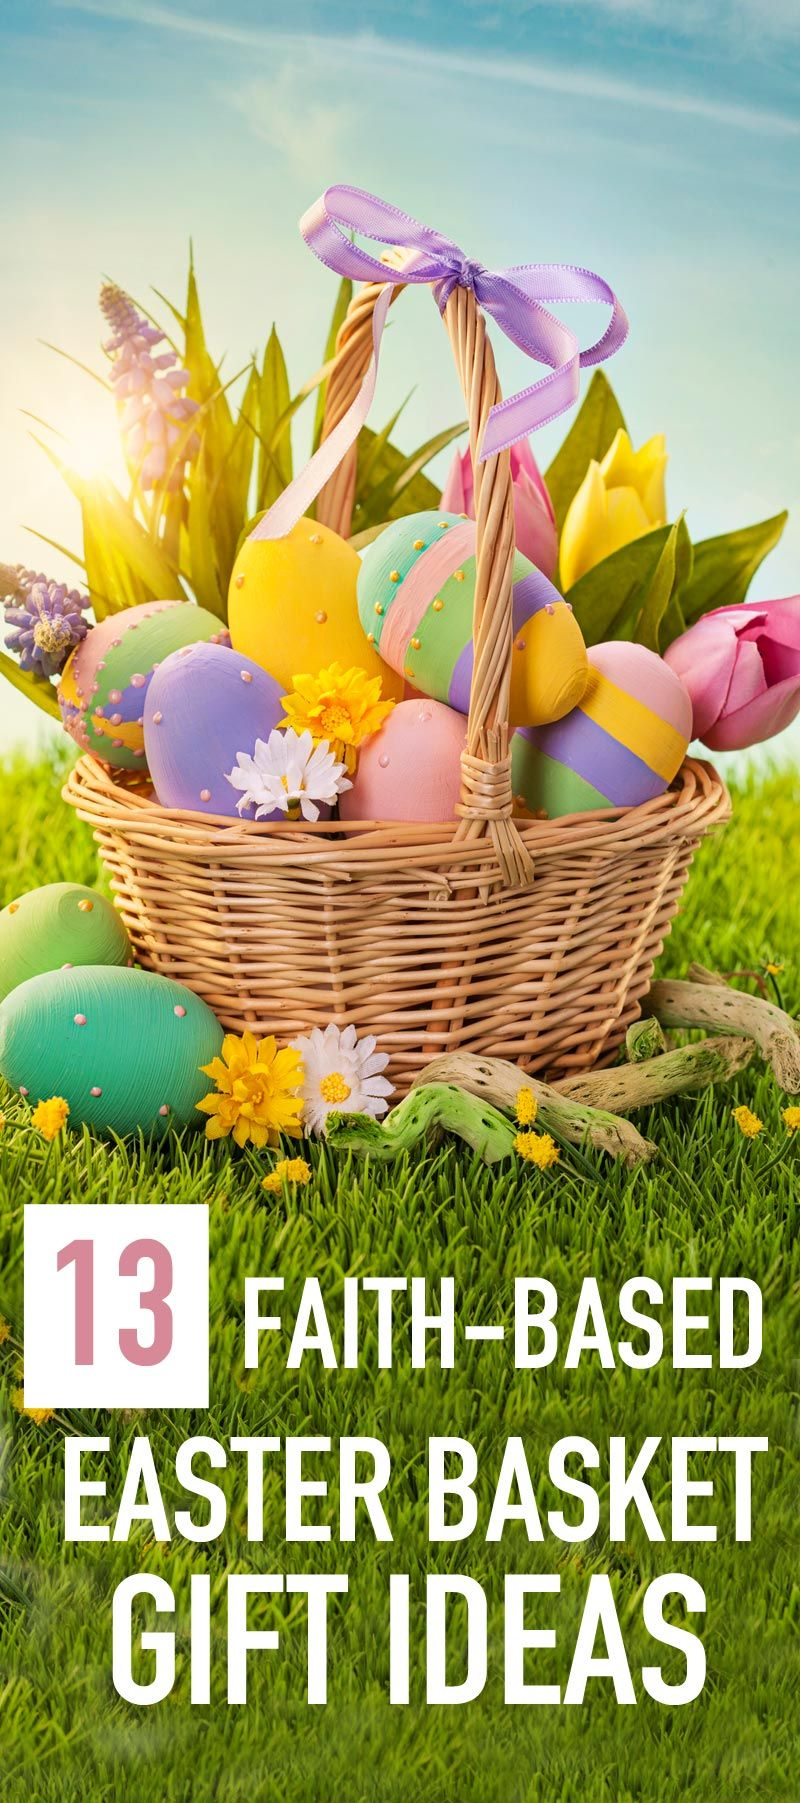 32 cute christian easter gifts for toddlers chocolate easter eggs 32 cute christian easter gifts for toddlers negle Choice Image